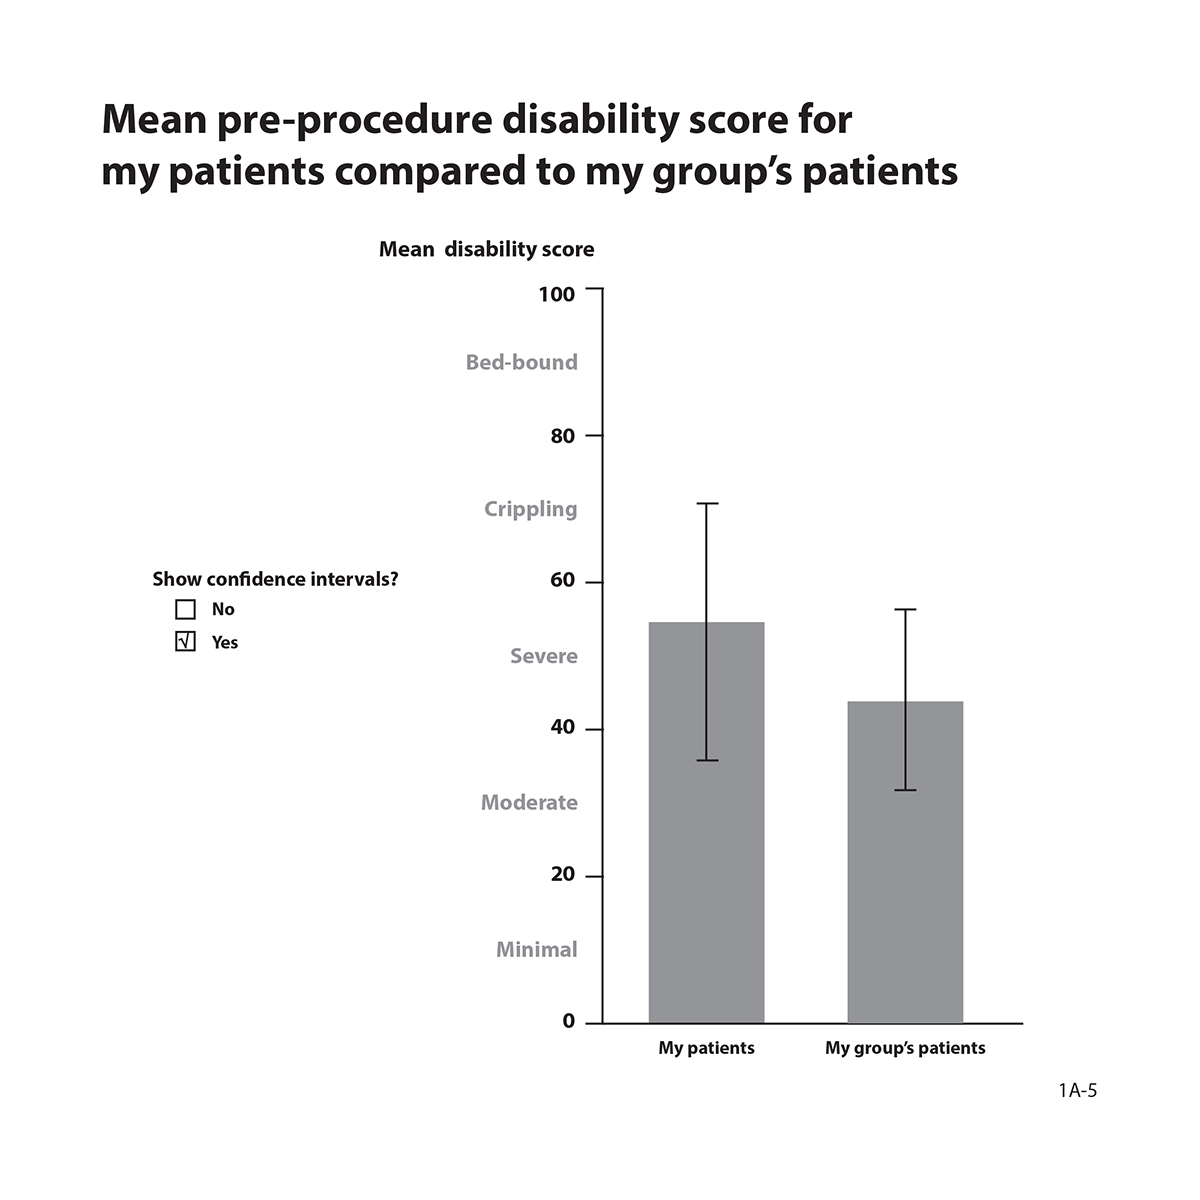 Graph showing mean pre-procedure disability score for my patients compared to my group's patients with confidence intervals.